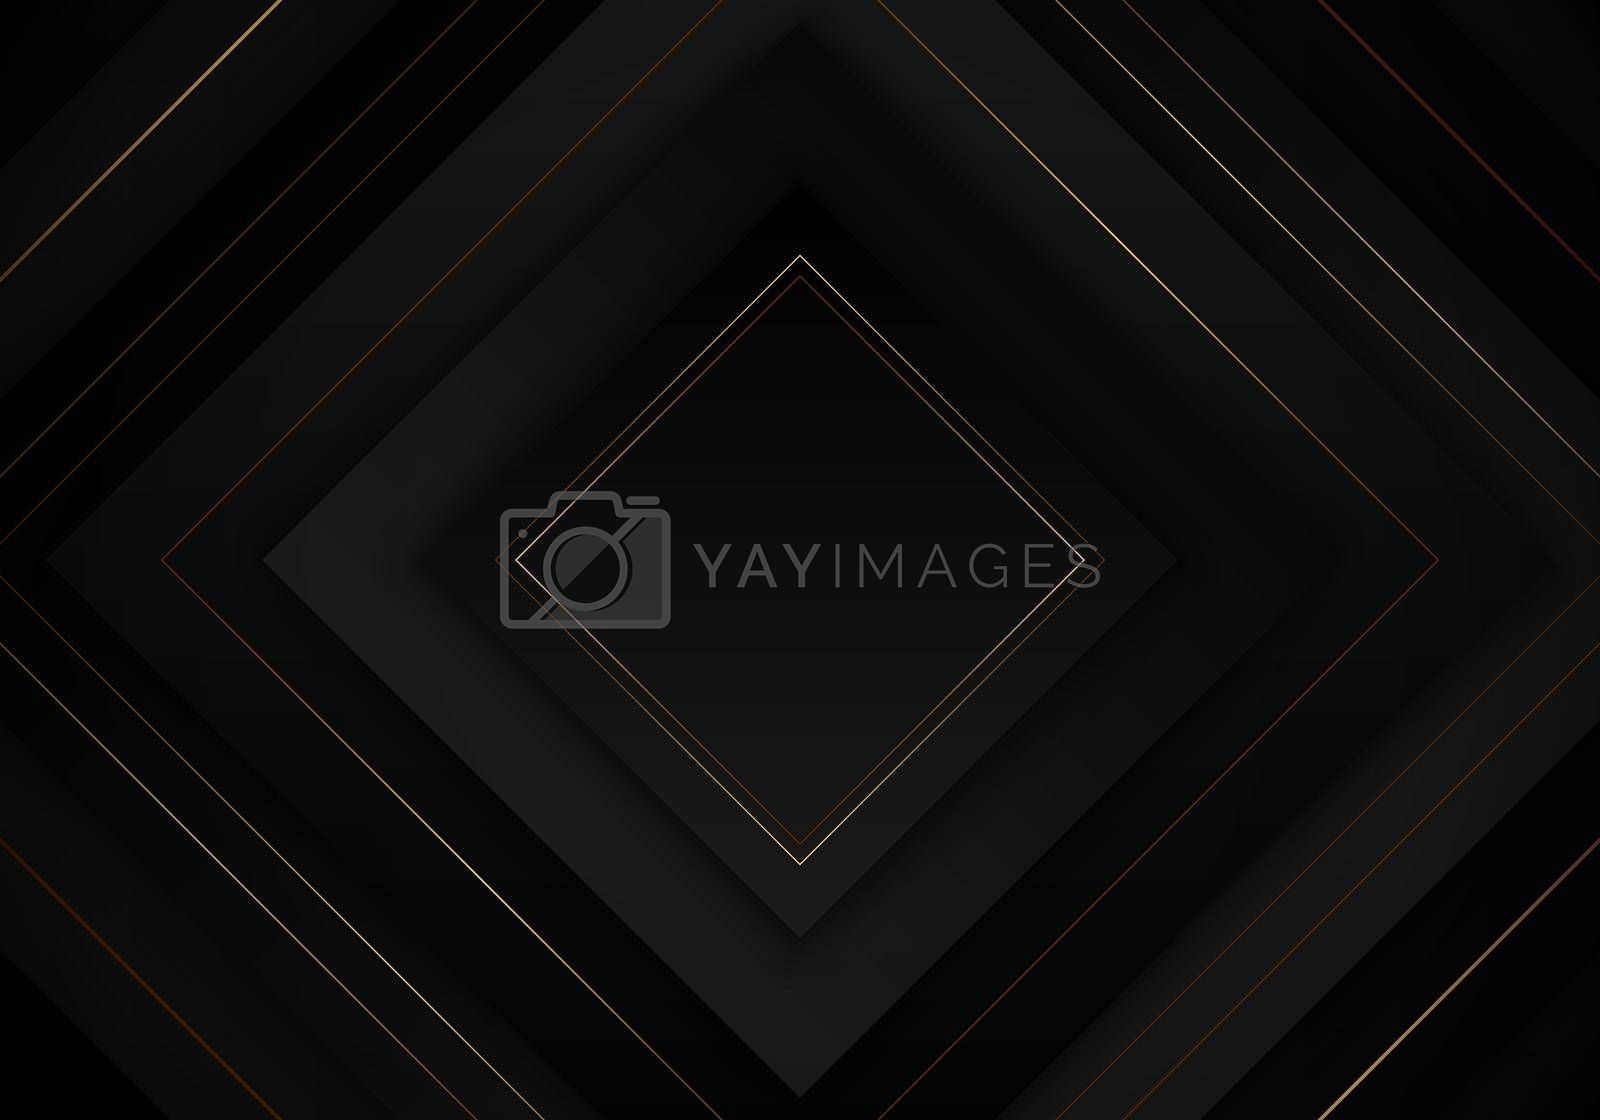 Royalty free image of 3D elegant abstract black square layered with golden lines on dark background luxury style by phochi